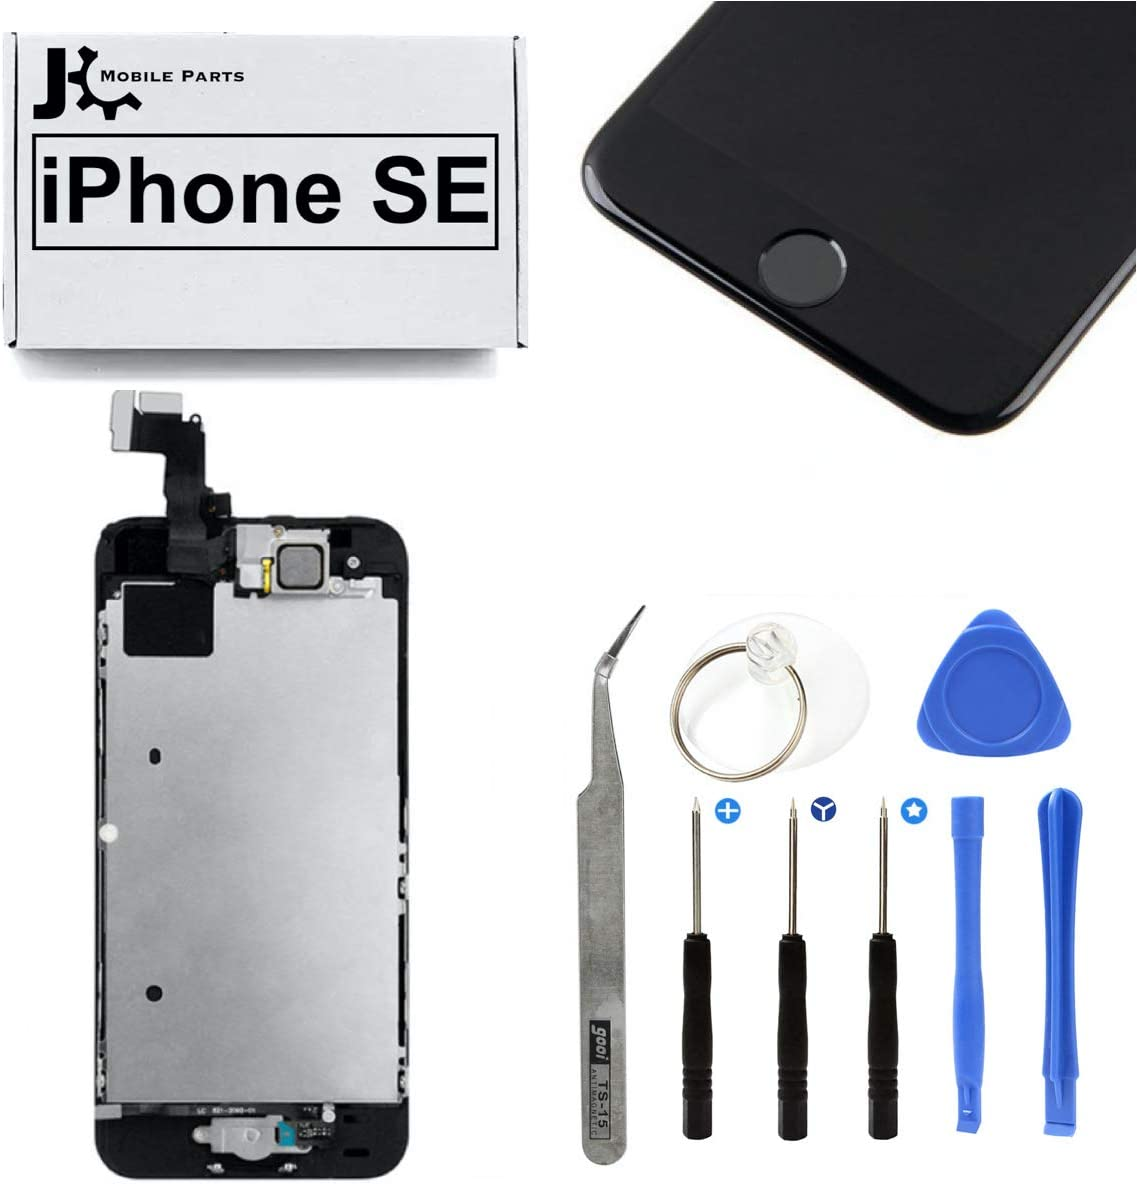 Full Screen Replacement LCD Touch Assembly Front Camera Ear Speaker Home Button with Repair Tools for iPhone SE 4.0 inch (Black)